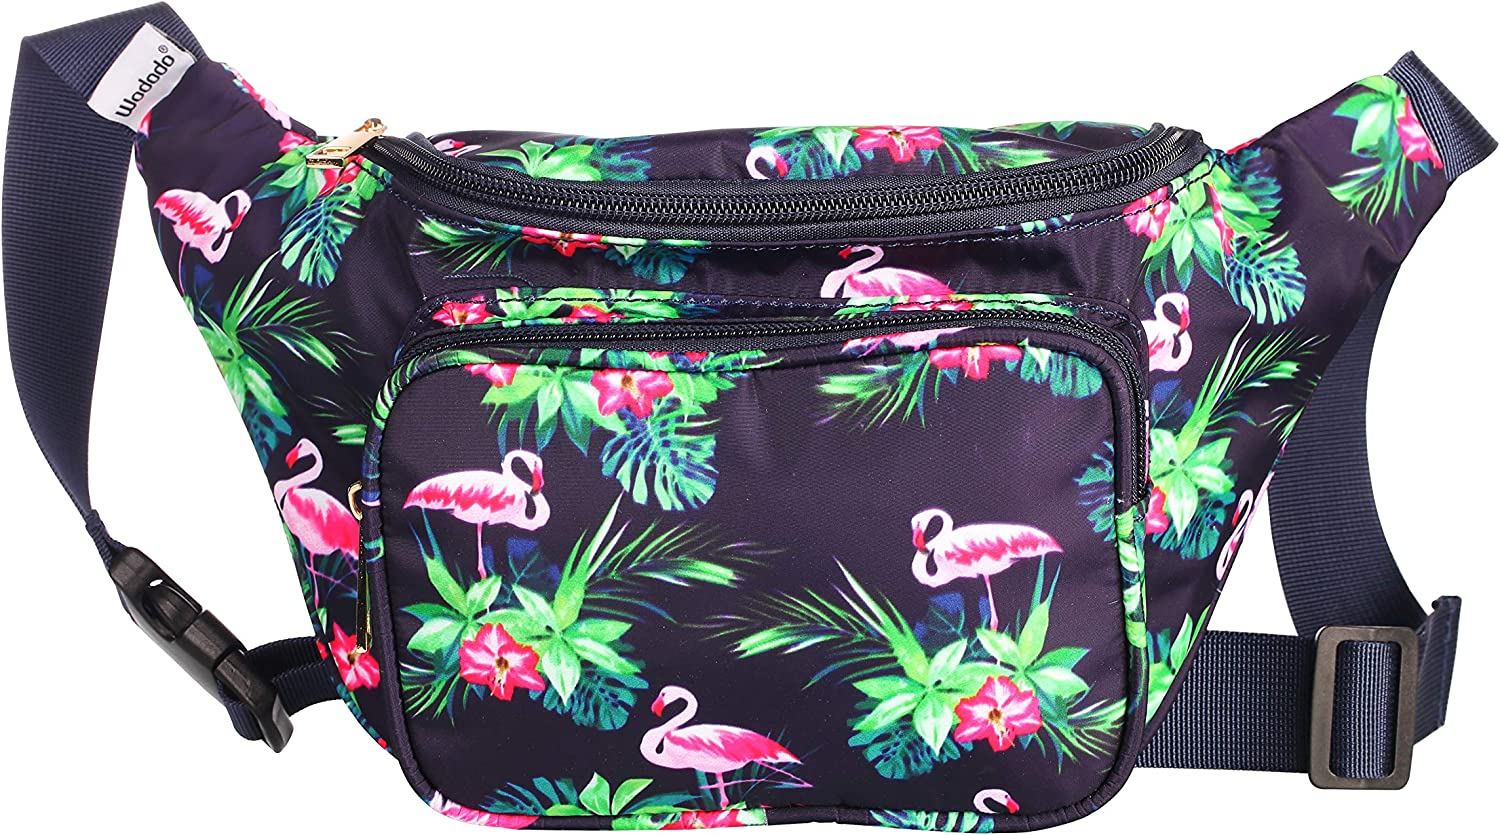 Plaid Pineapple Sport Waist Pack Fanny Pack Adjustable For Hike